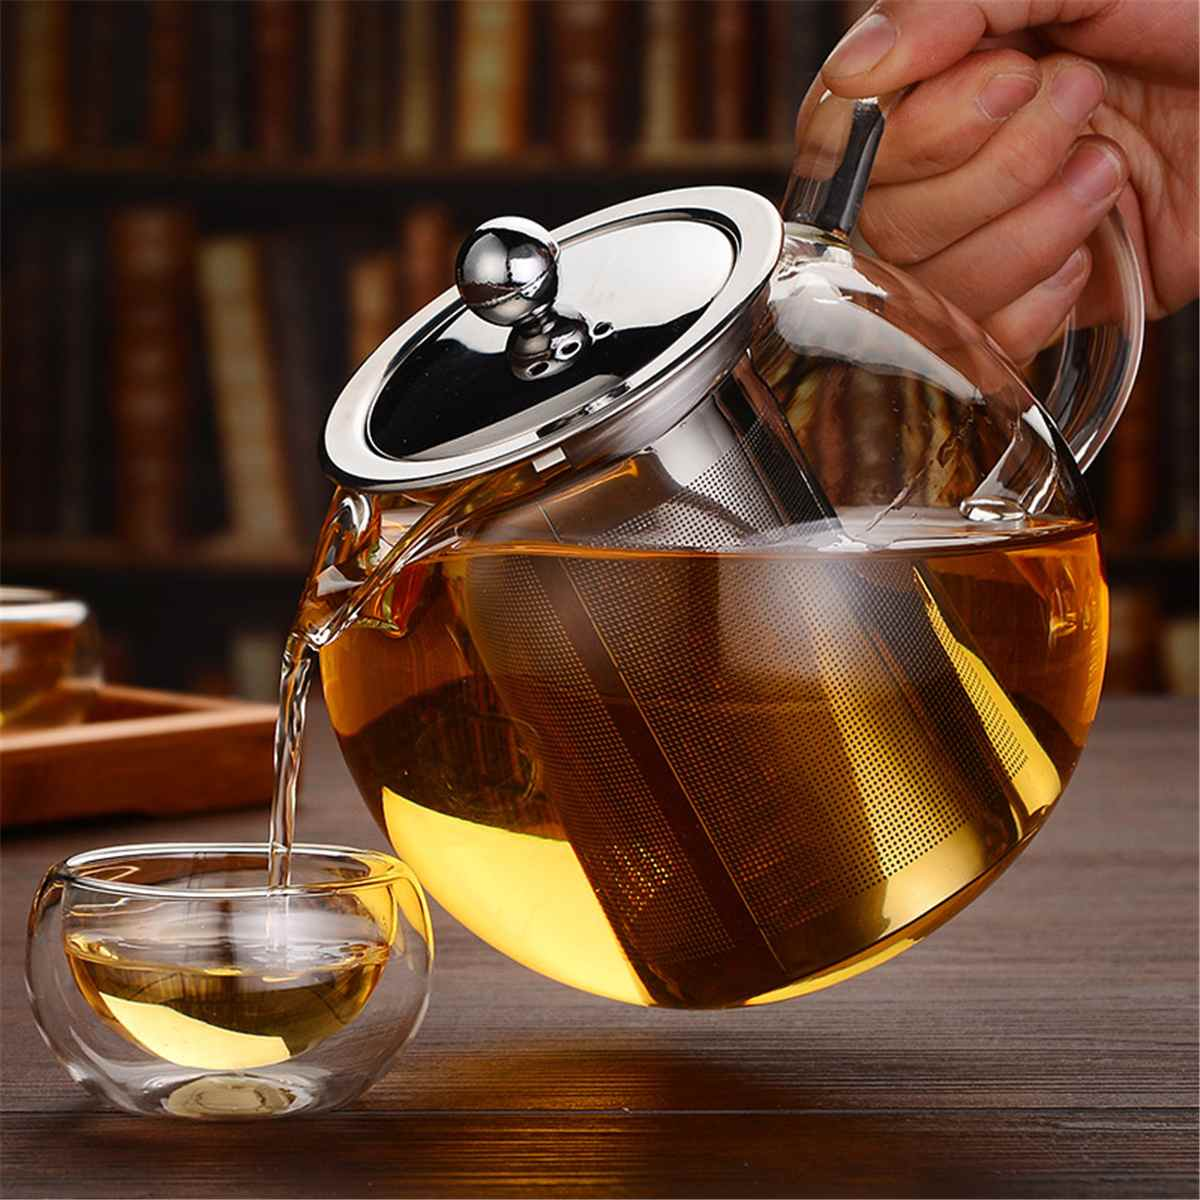 600/950/1300ml Glass Stainless Steel Teapot With Infuser Filter Lid Heat Resistant Tea Pot Kettle Home Office Teaware Set